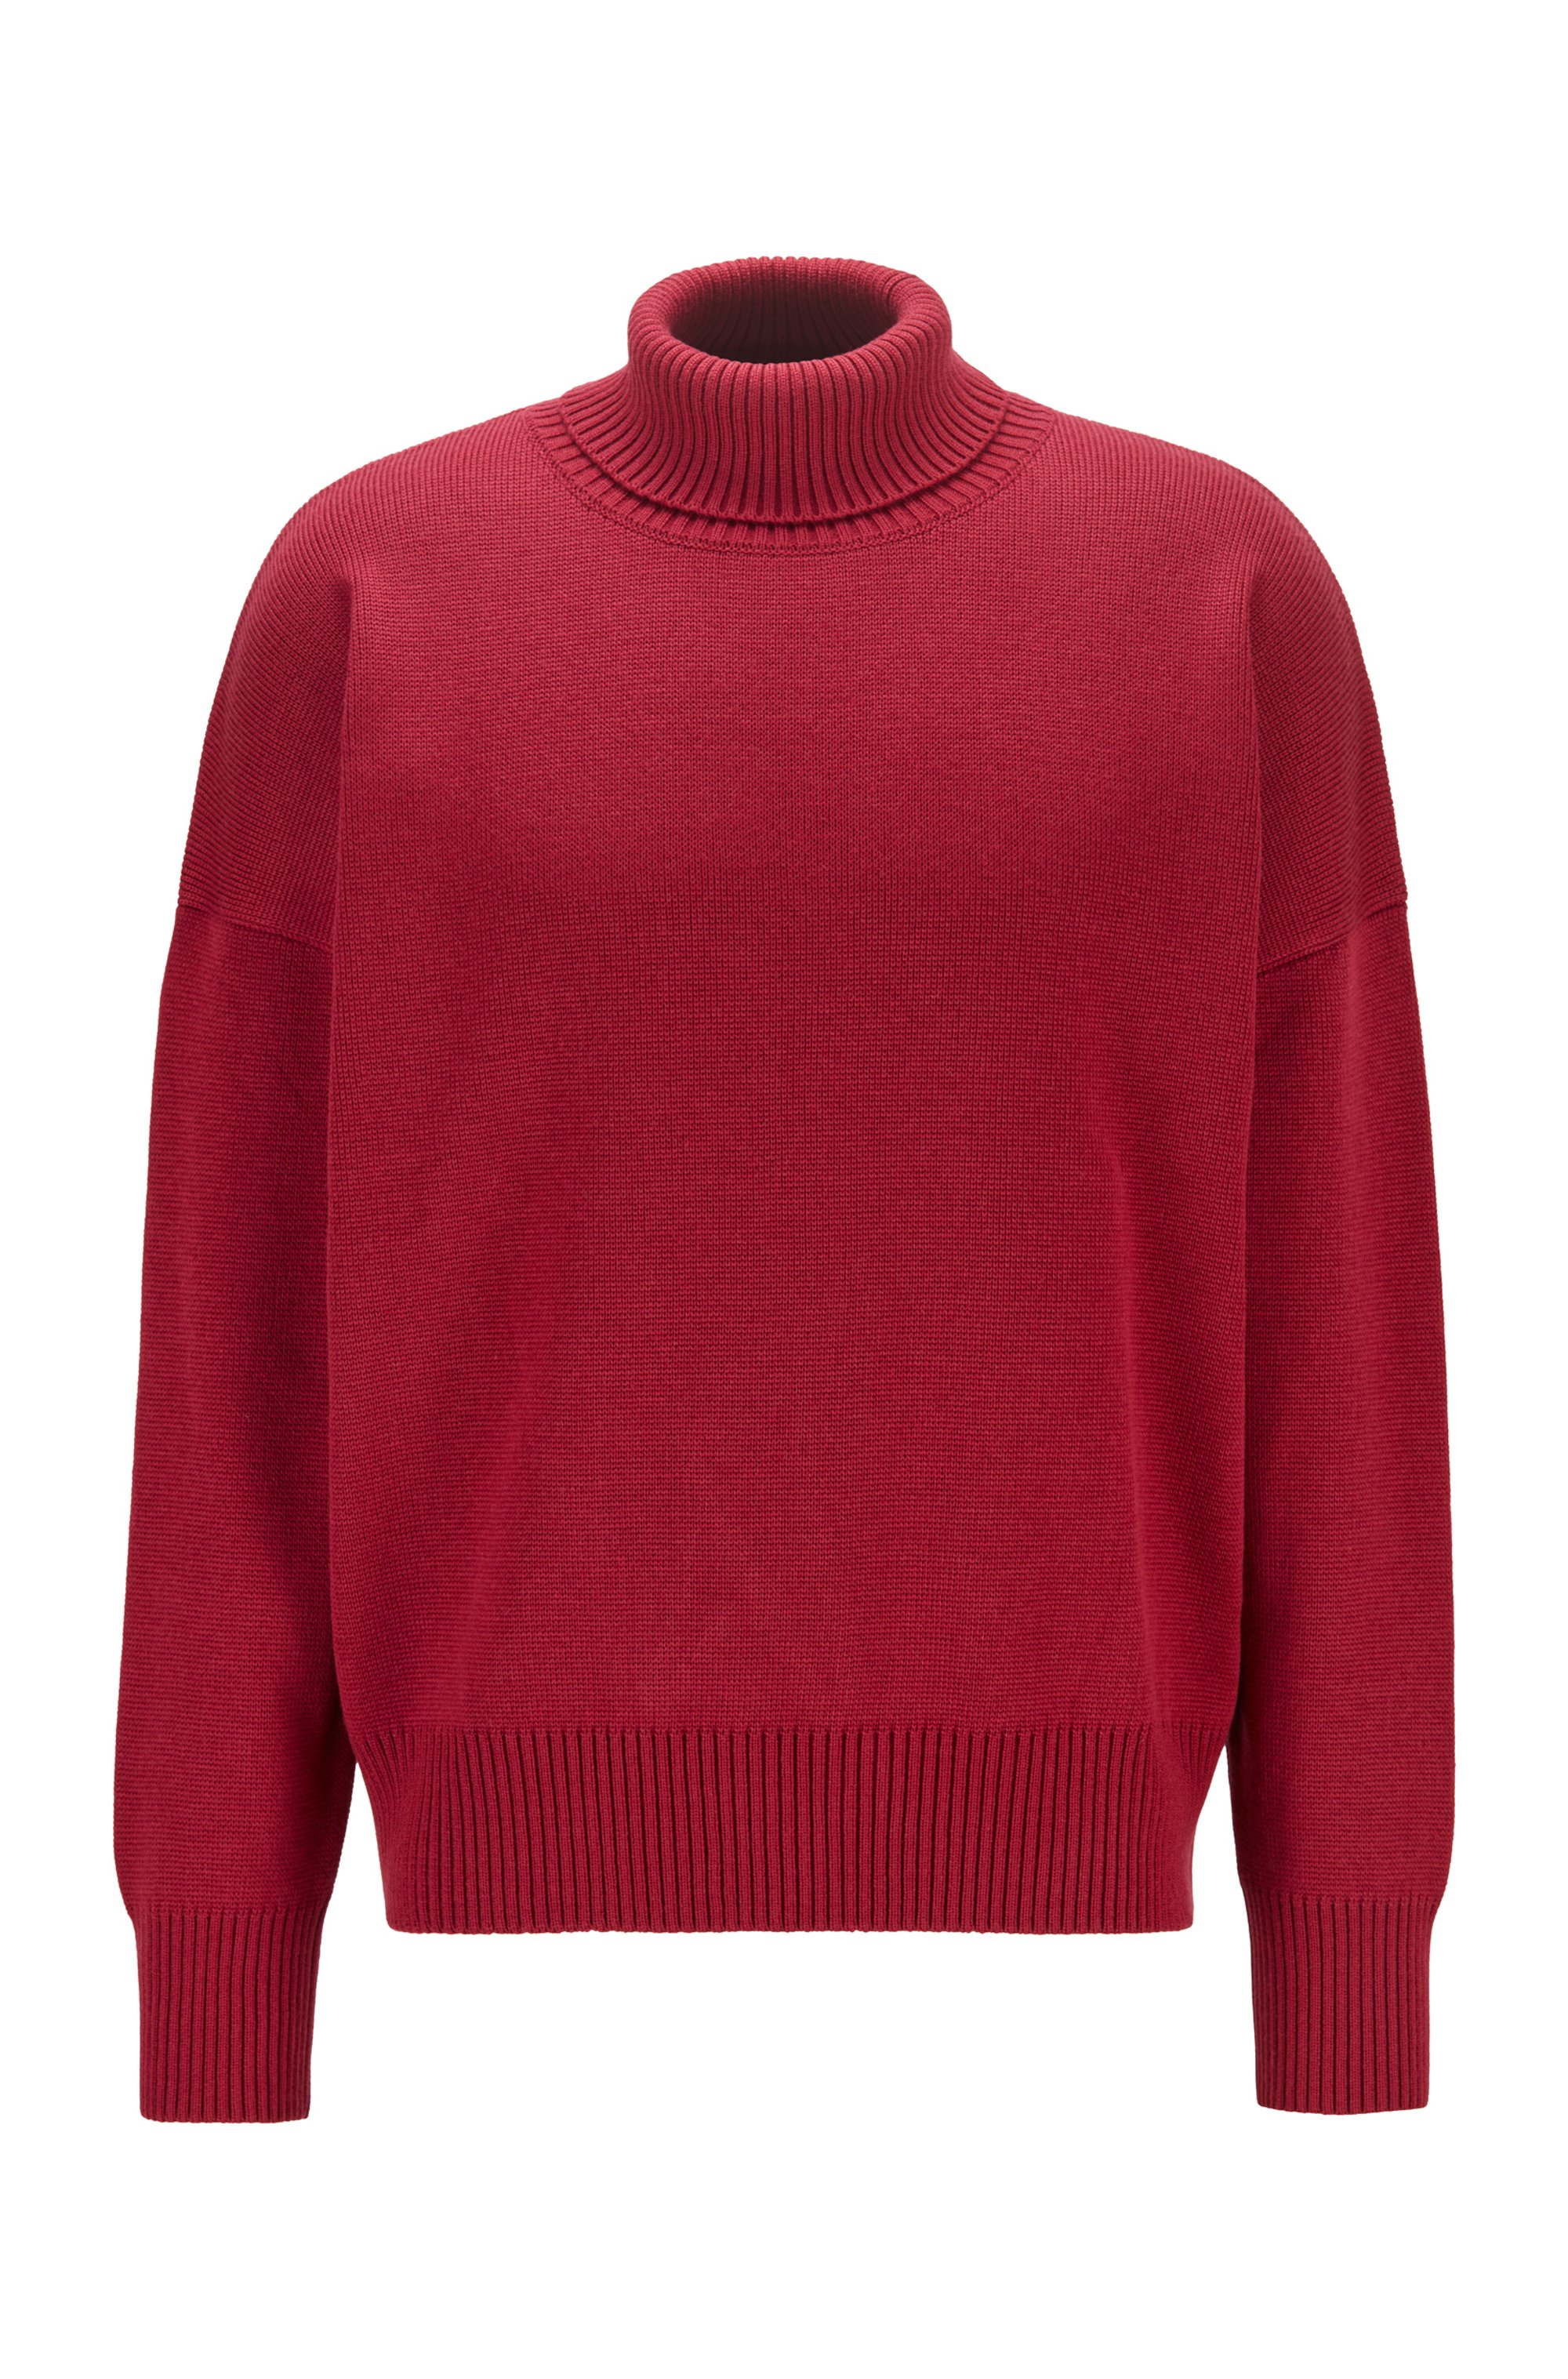 Pull col roulé Relaxed Fit en laine vierge, Rouge sombre